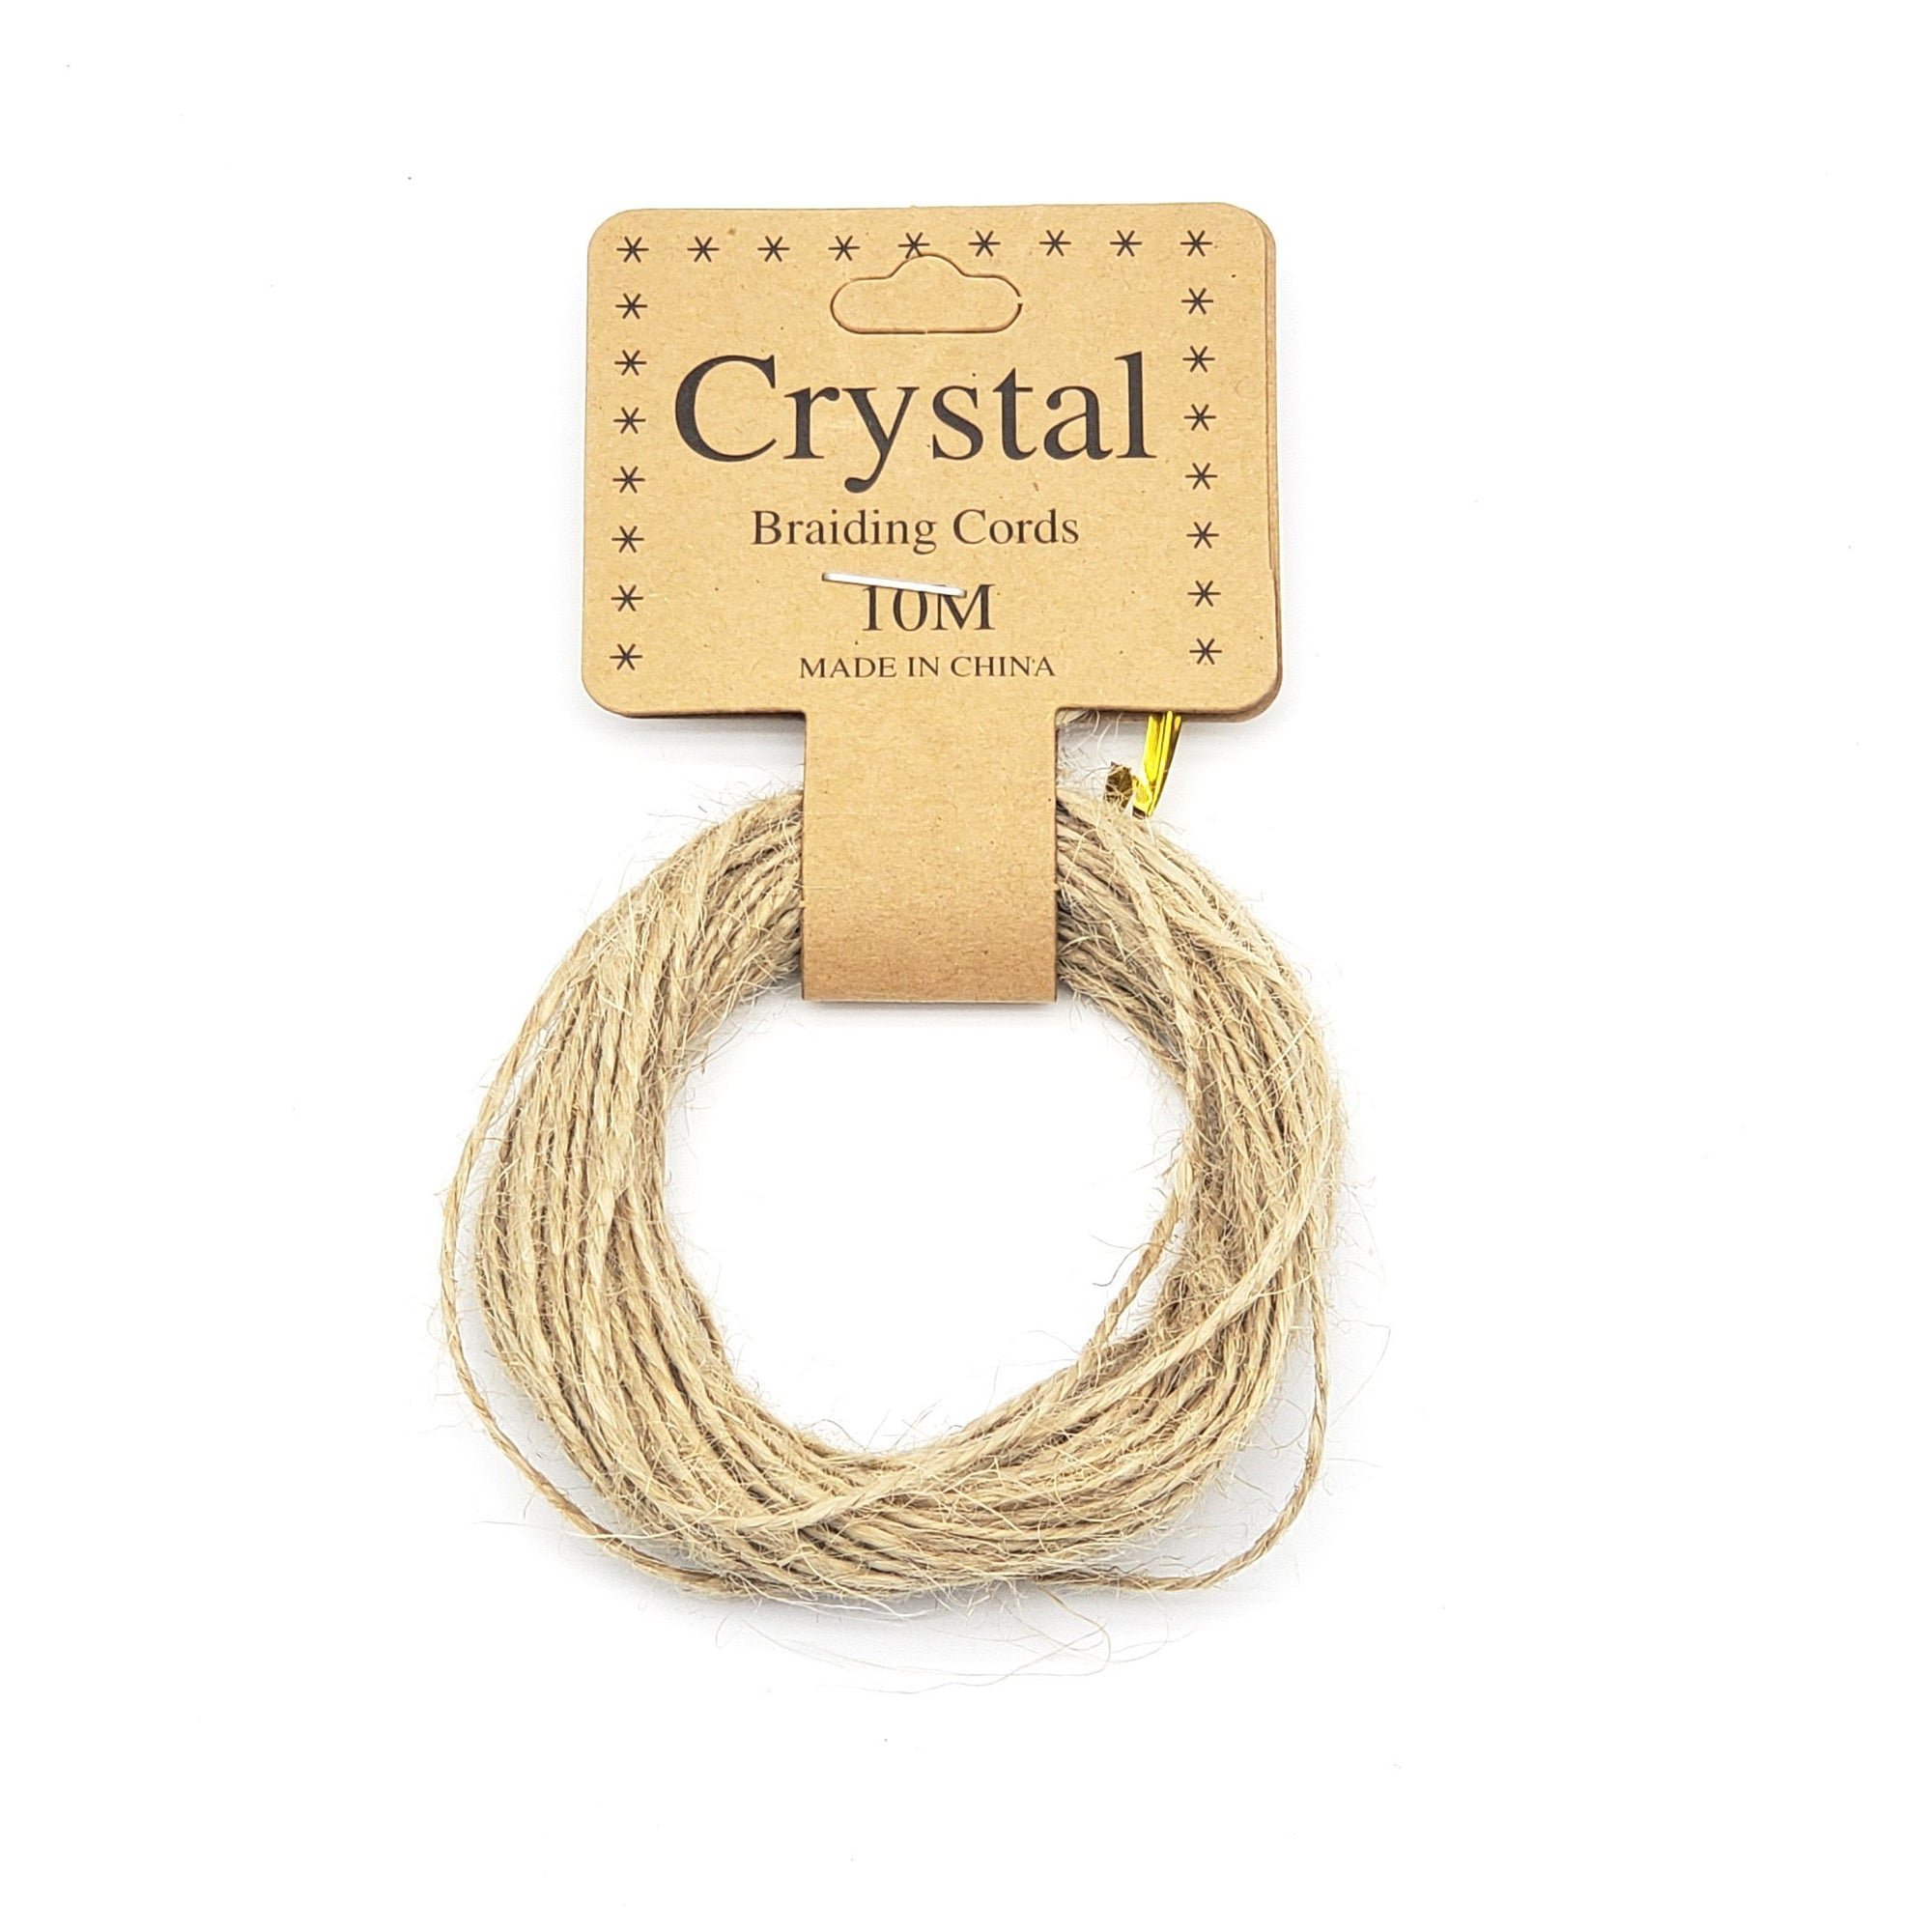 Crystal Braiding Cords 10M #KNV-1394 (12PC)